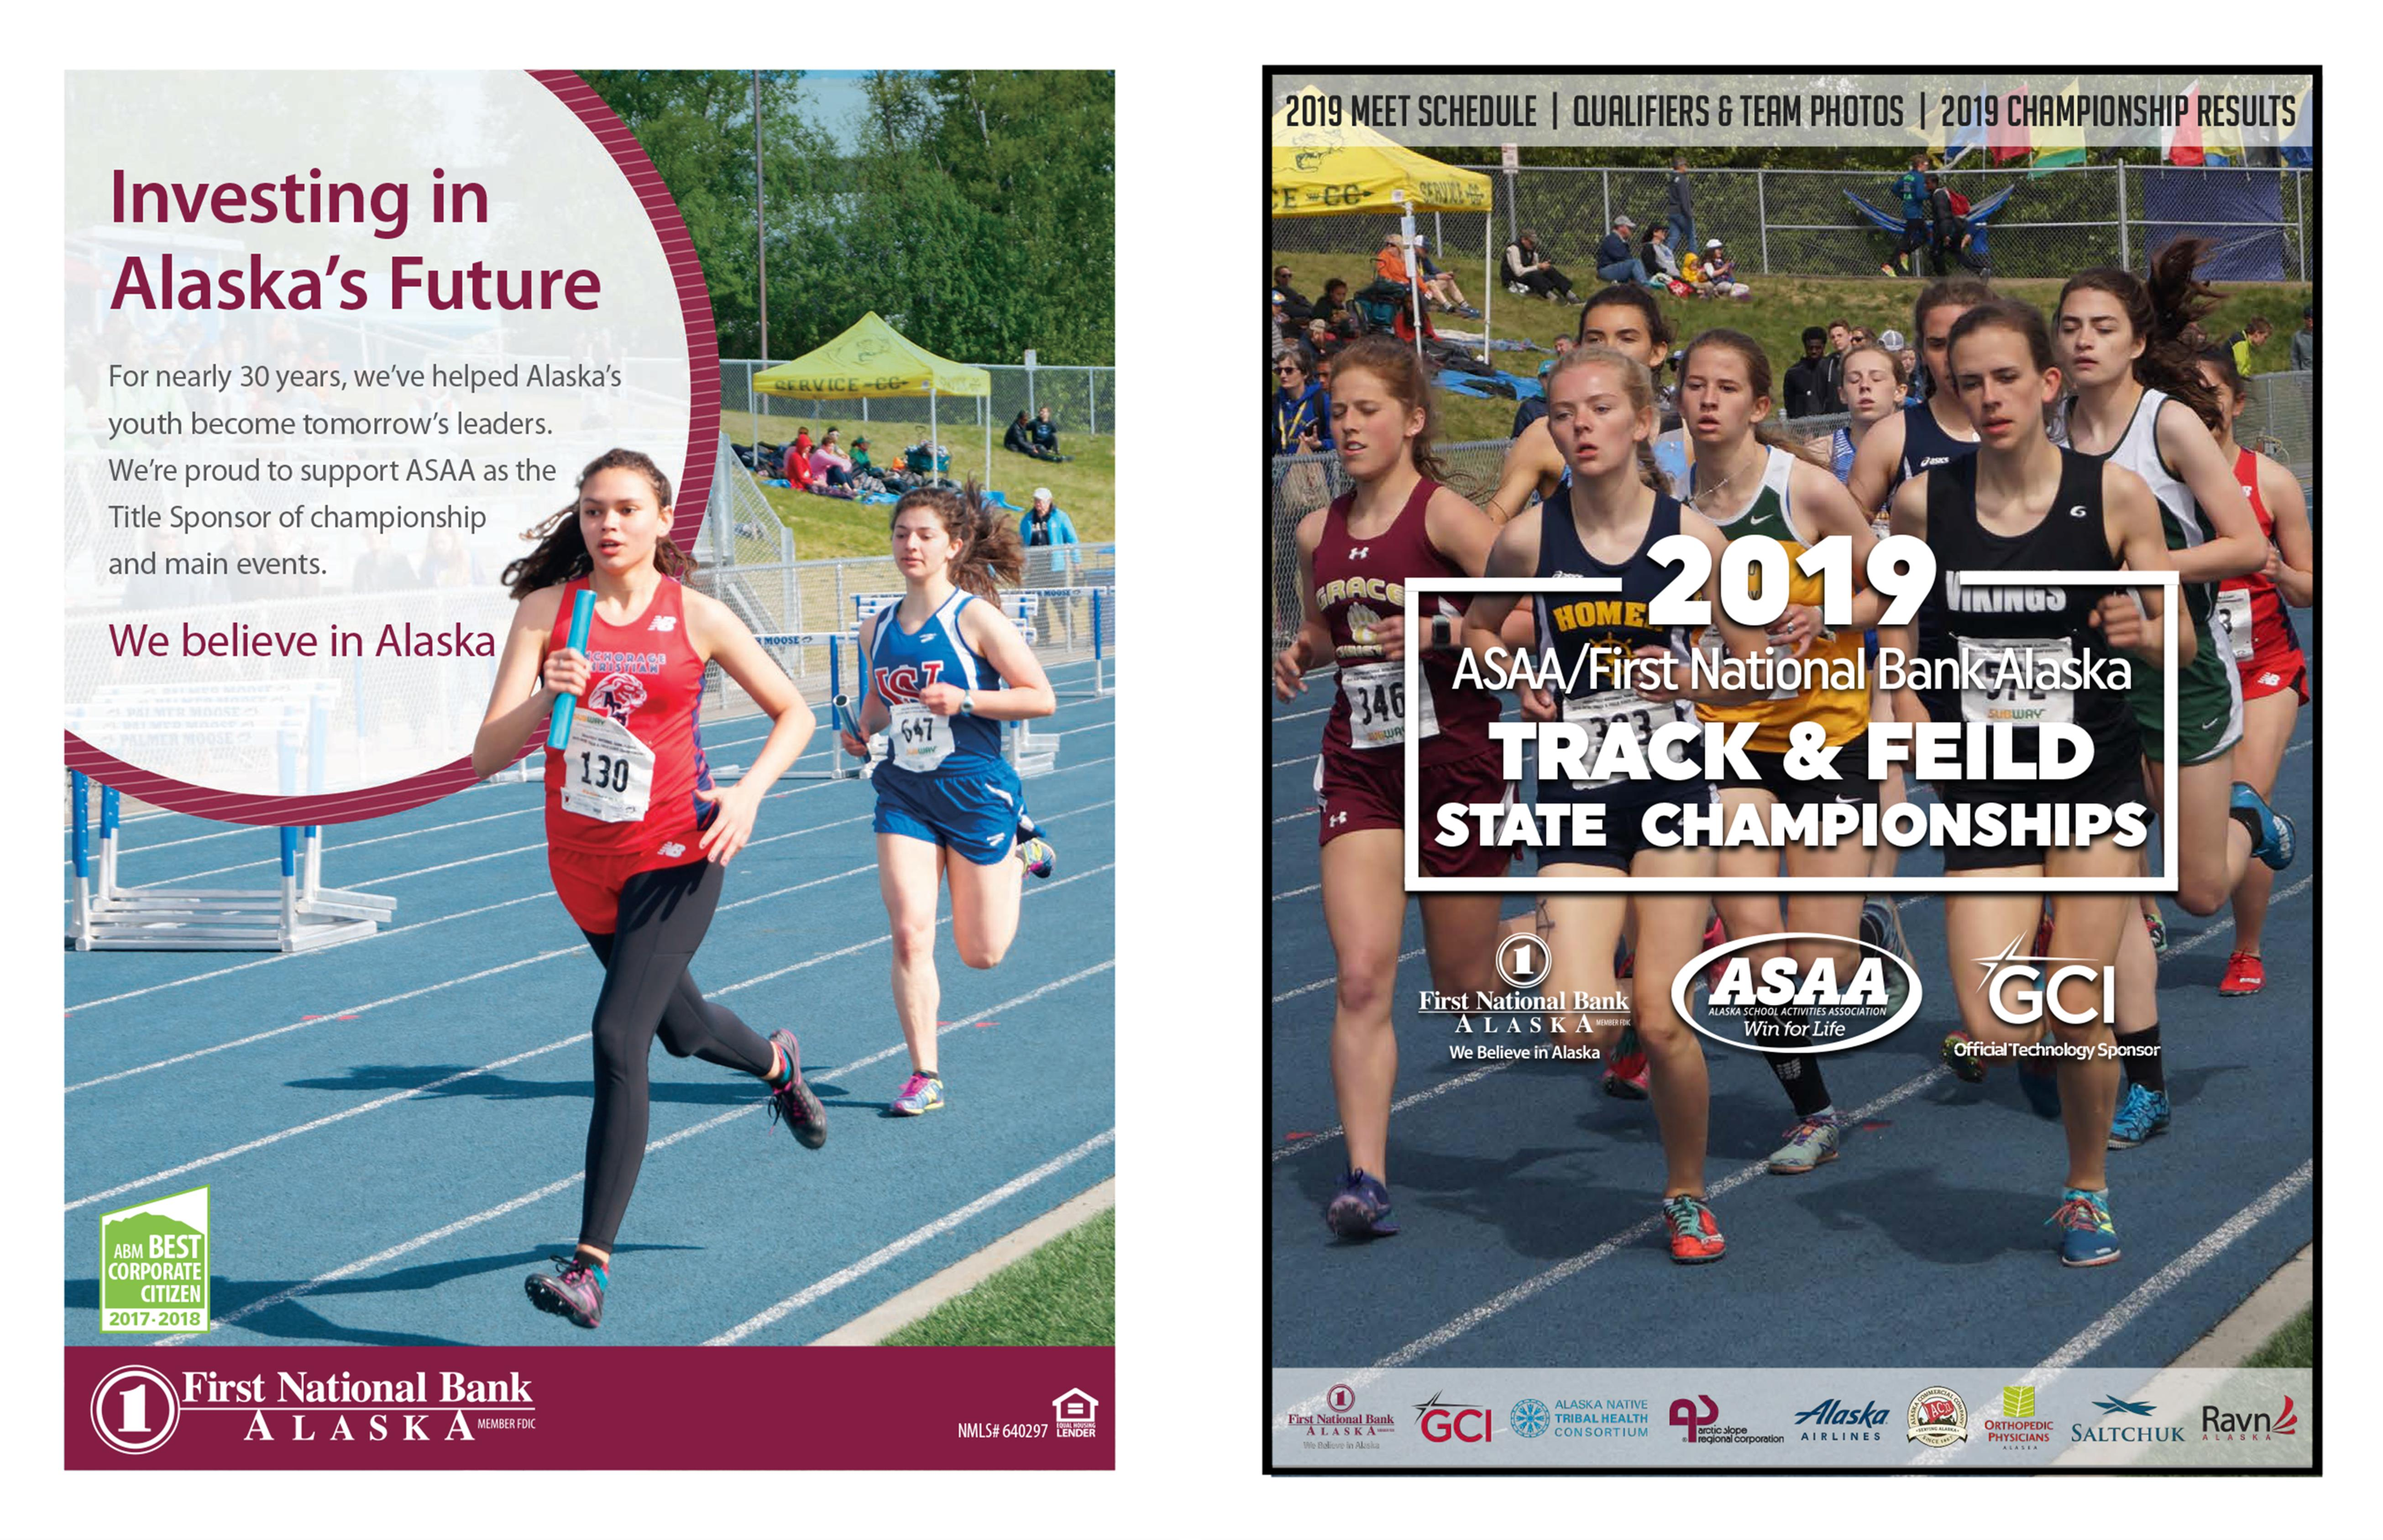 2019 ASAA/First National Bank Alaska Track and Field State Championship Program cover image